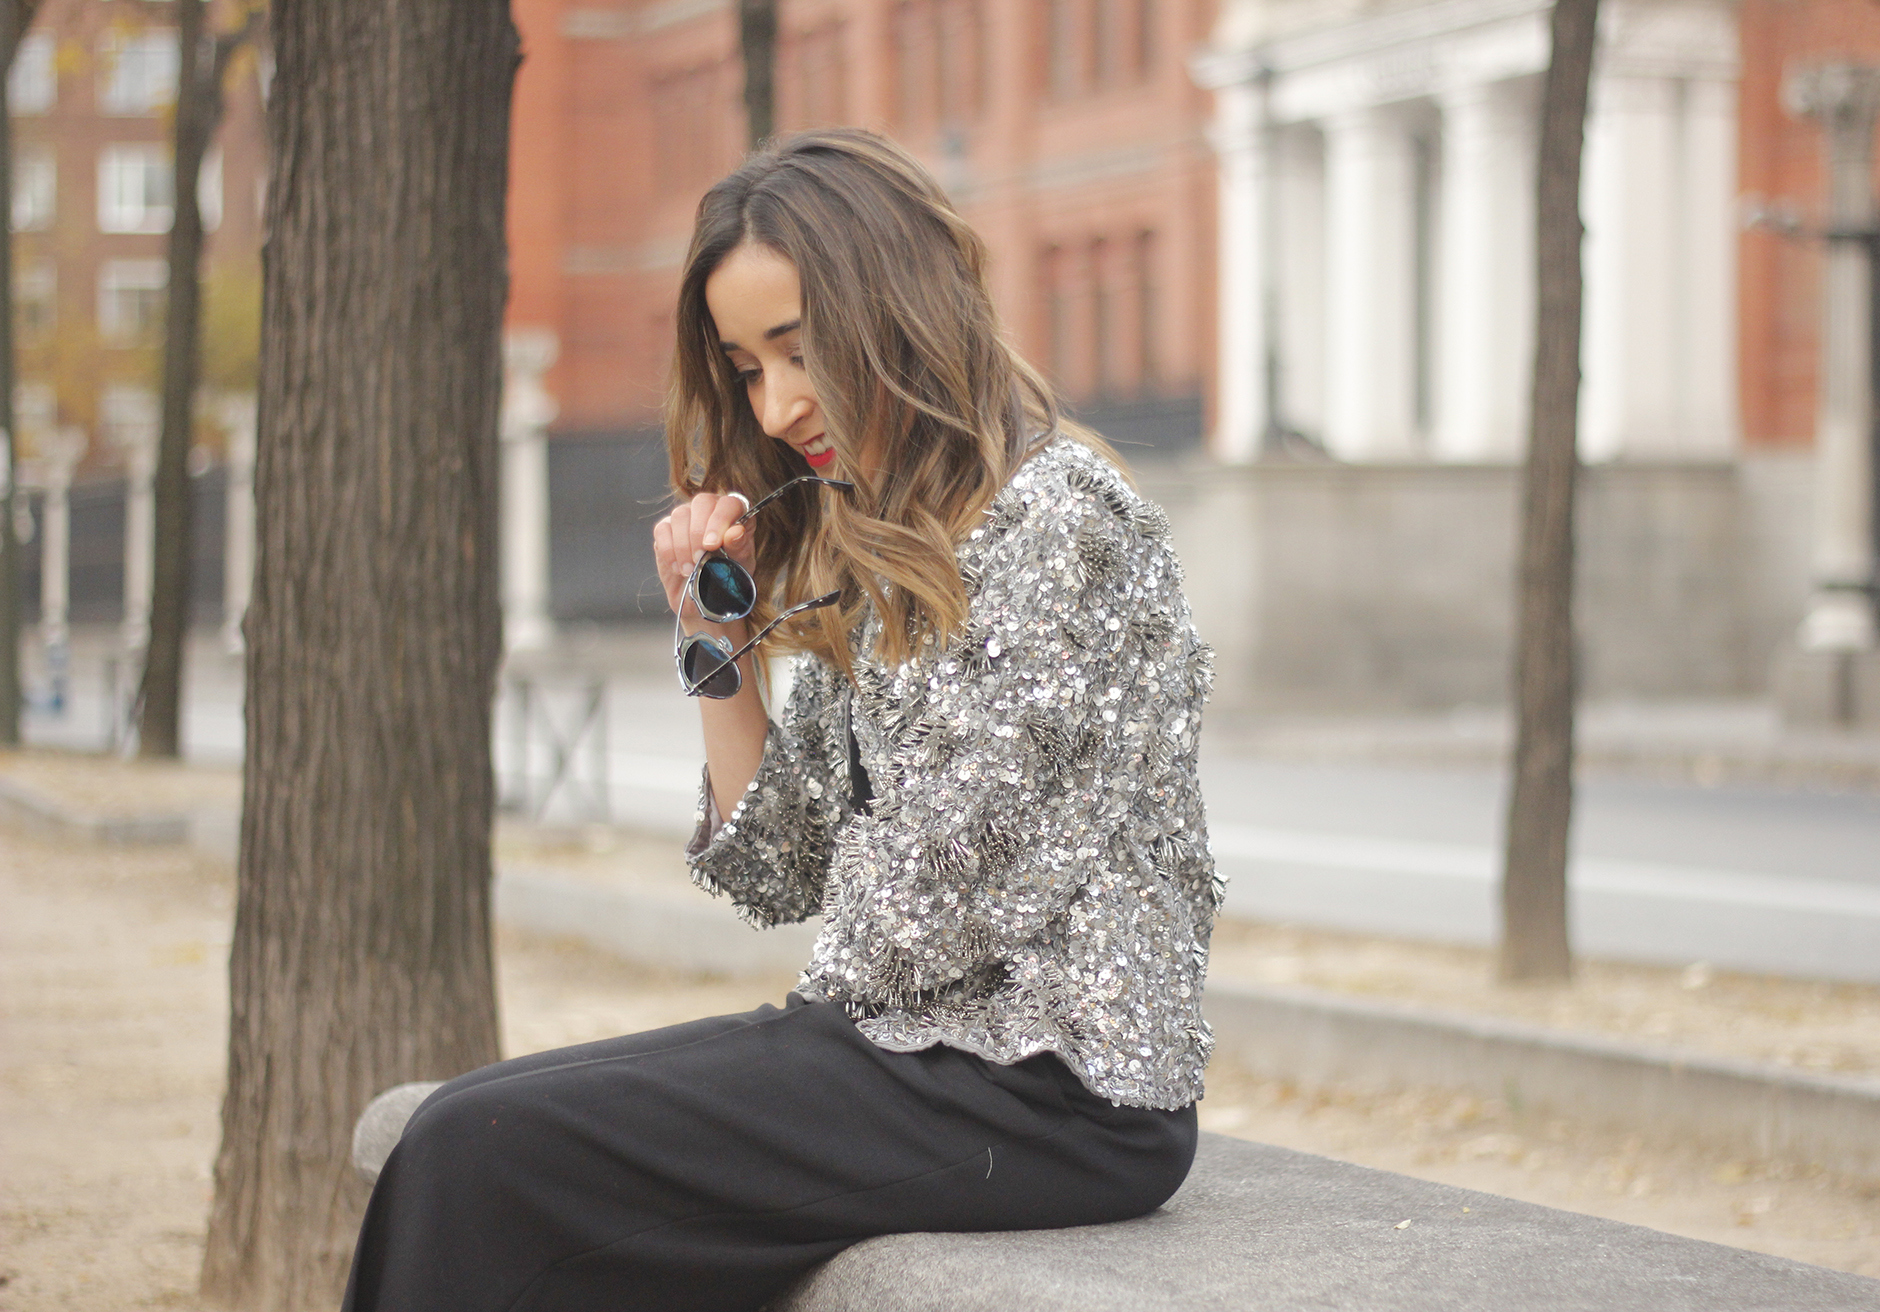 sequined jacket cropped trousers winter outfit black heels accessories streetstyle06